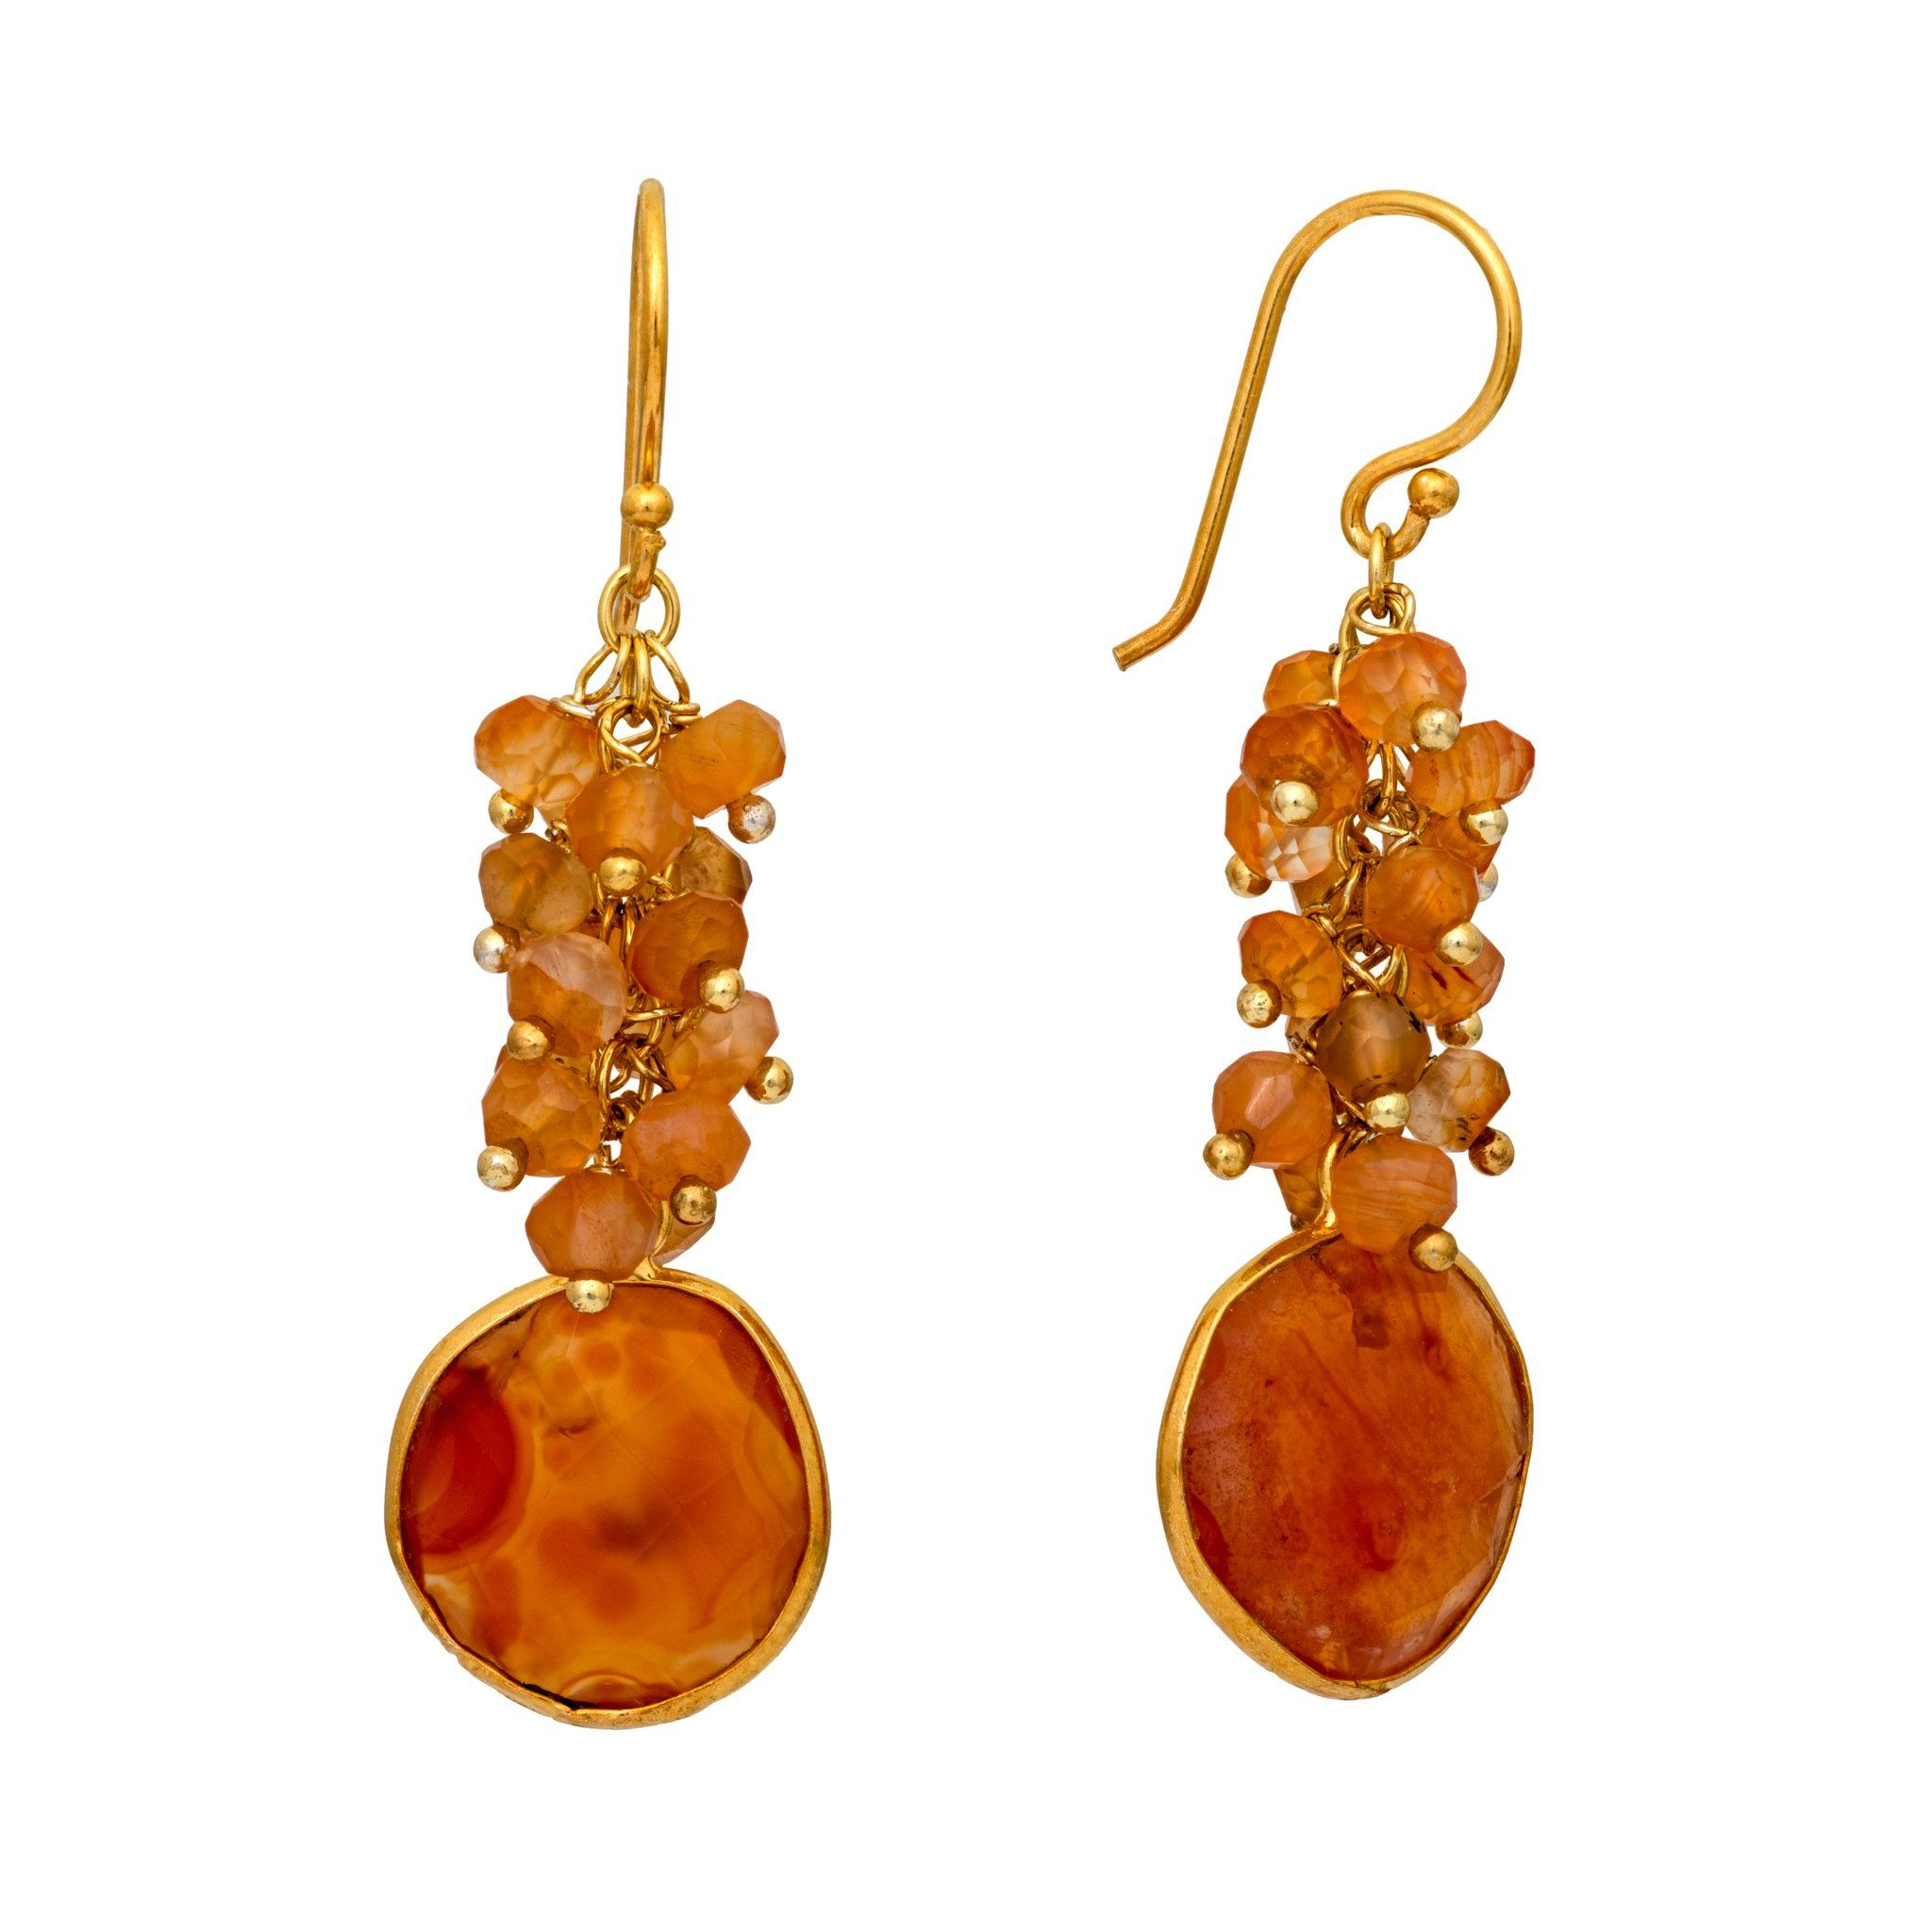 KAI carnelian cluster earrings